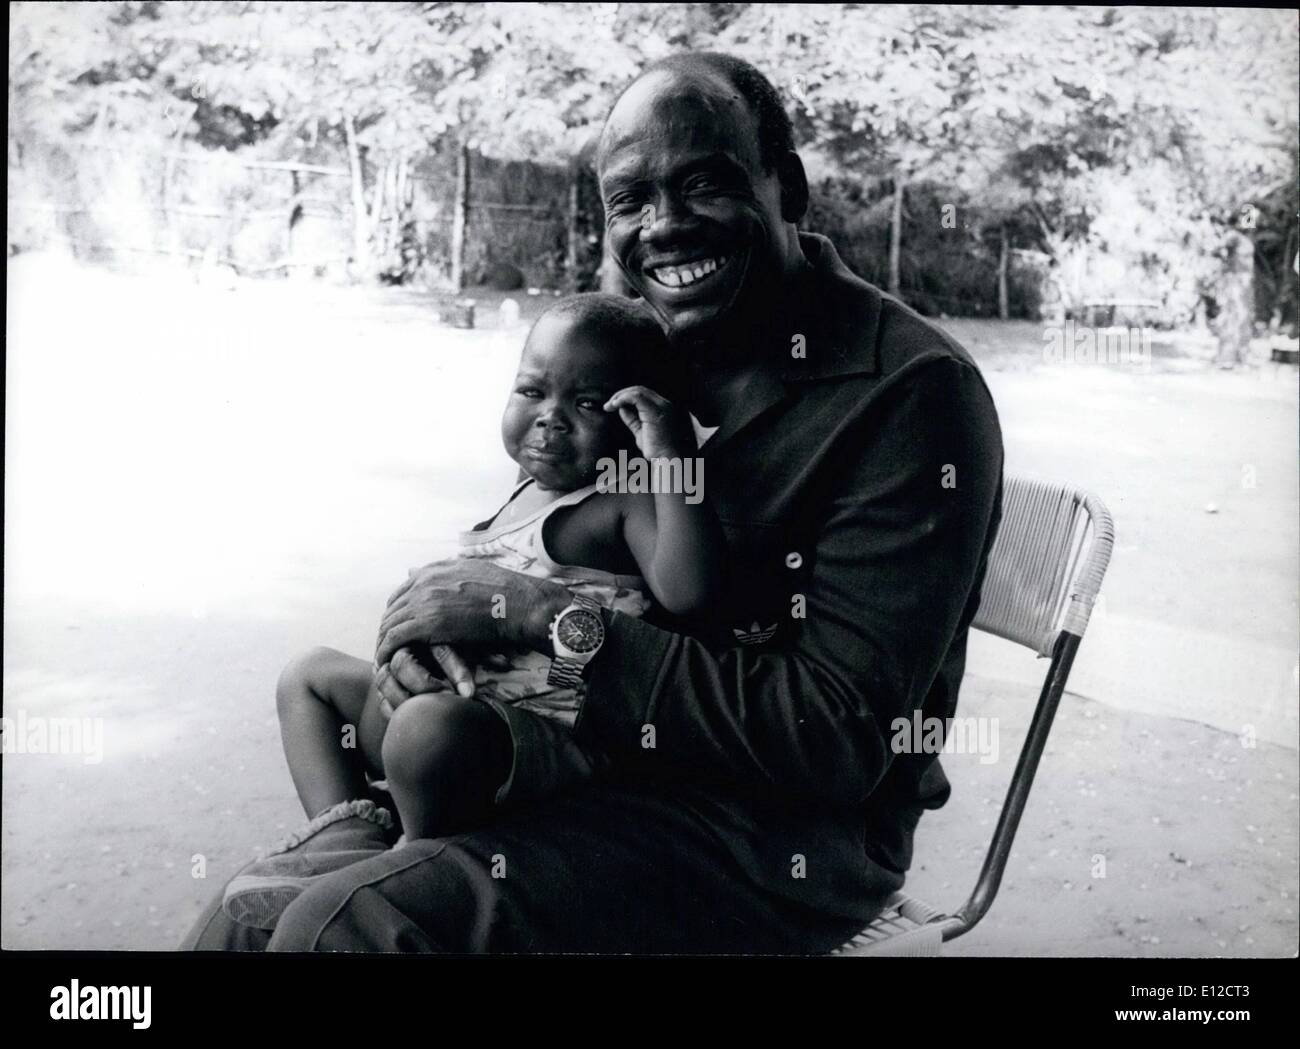 Dec. 16, 2011 - southern Sudan : General Mustafa Adrisi, former Vice President and Defence Minister in Idi Amin's regime pictures here with one of his 36 children now living in Southern Sudan. - Stock Image